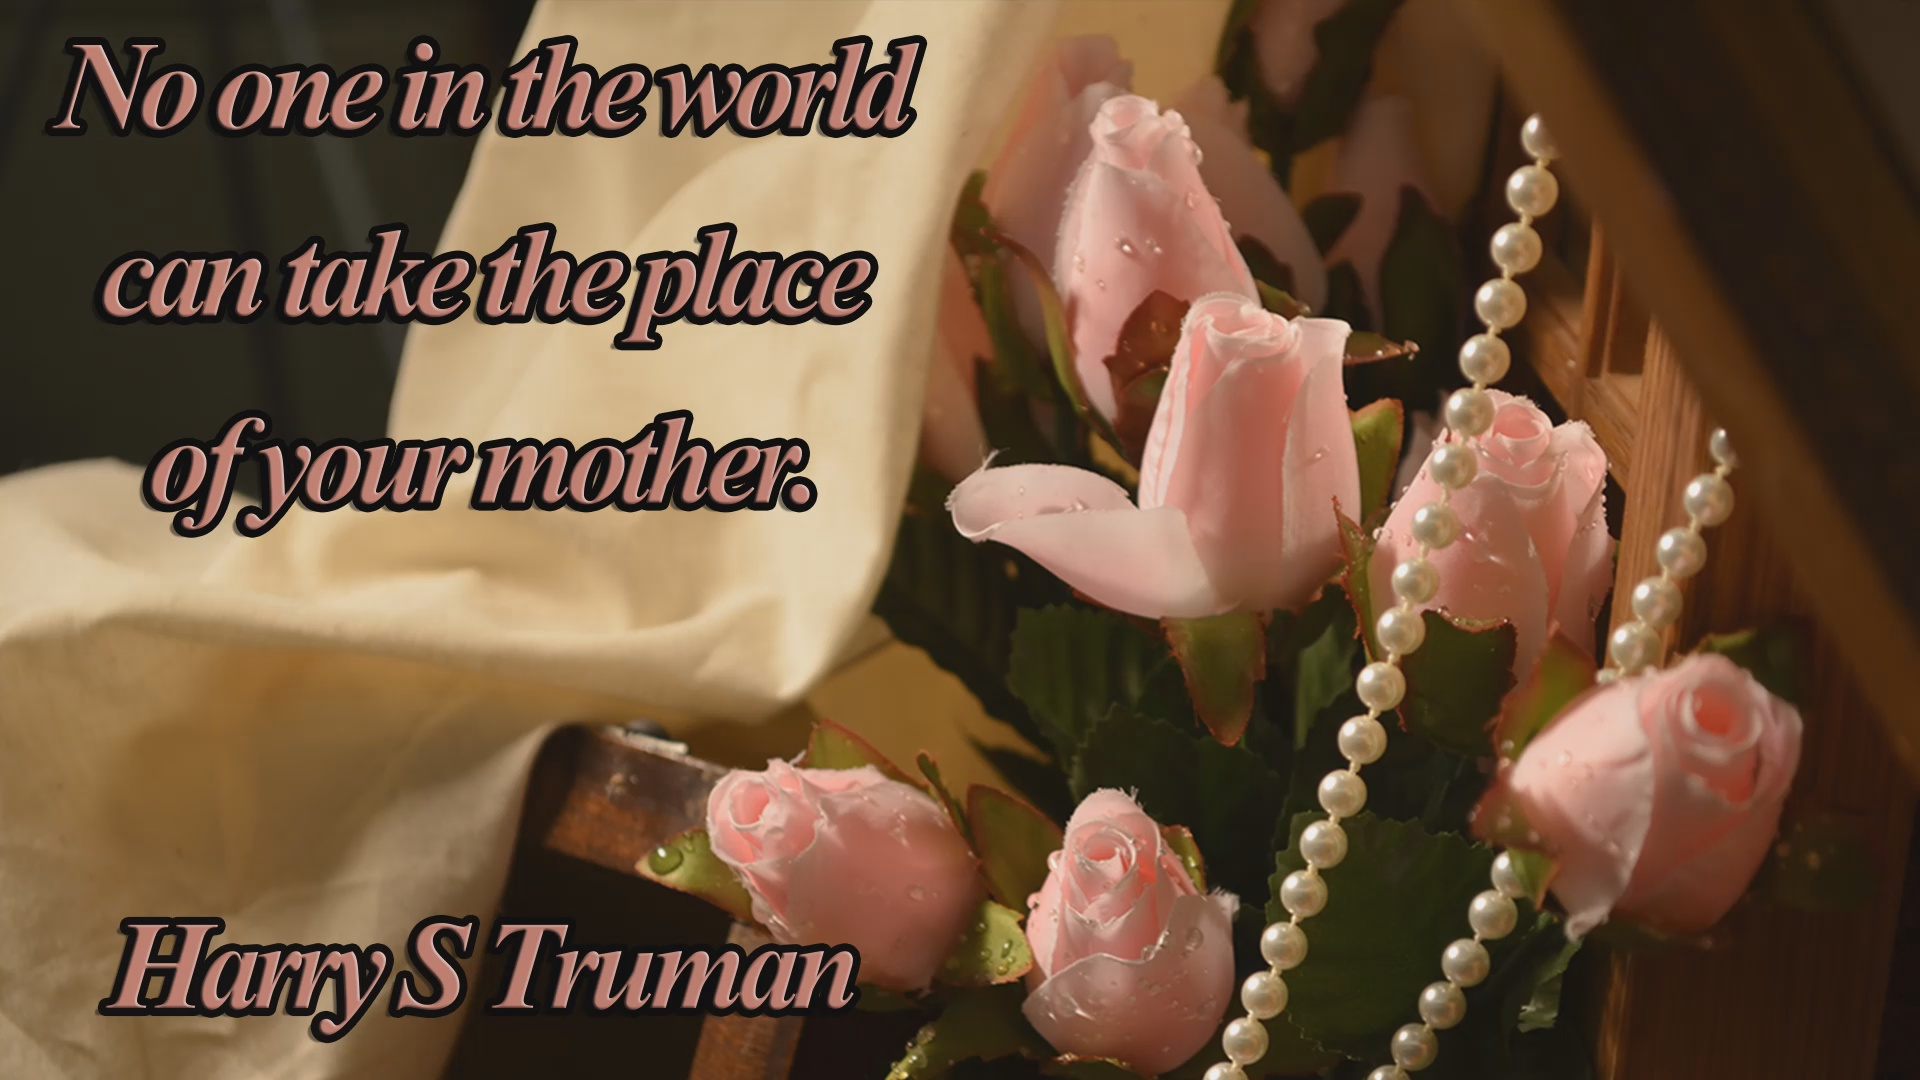 Truman Quote 1 Christian Animated Still A professional animated intro that's stops on a still image without continuous movements distraction